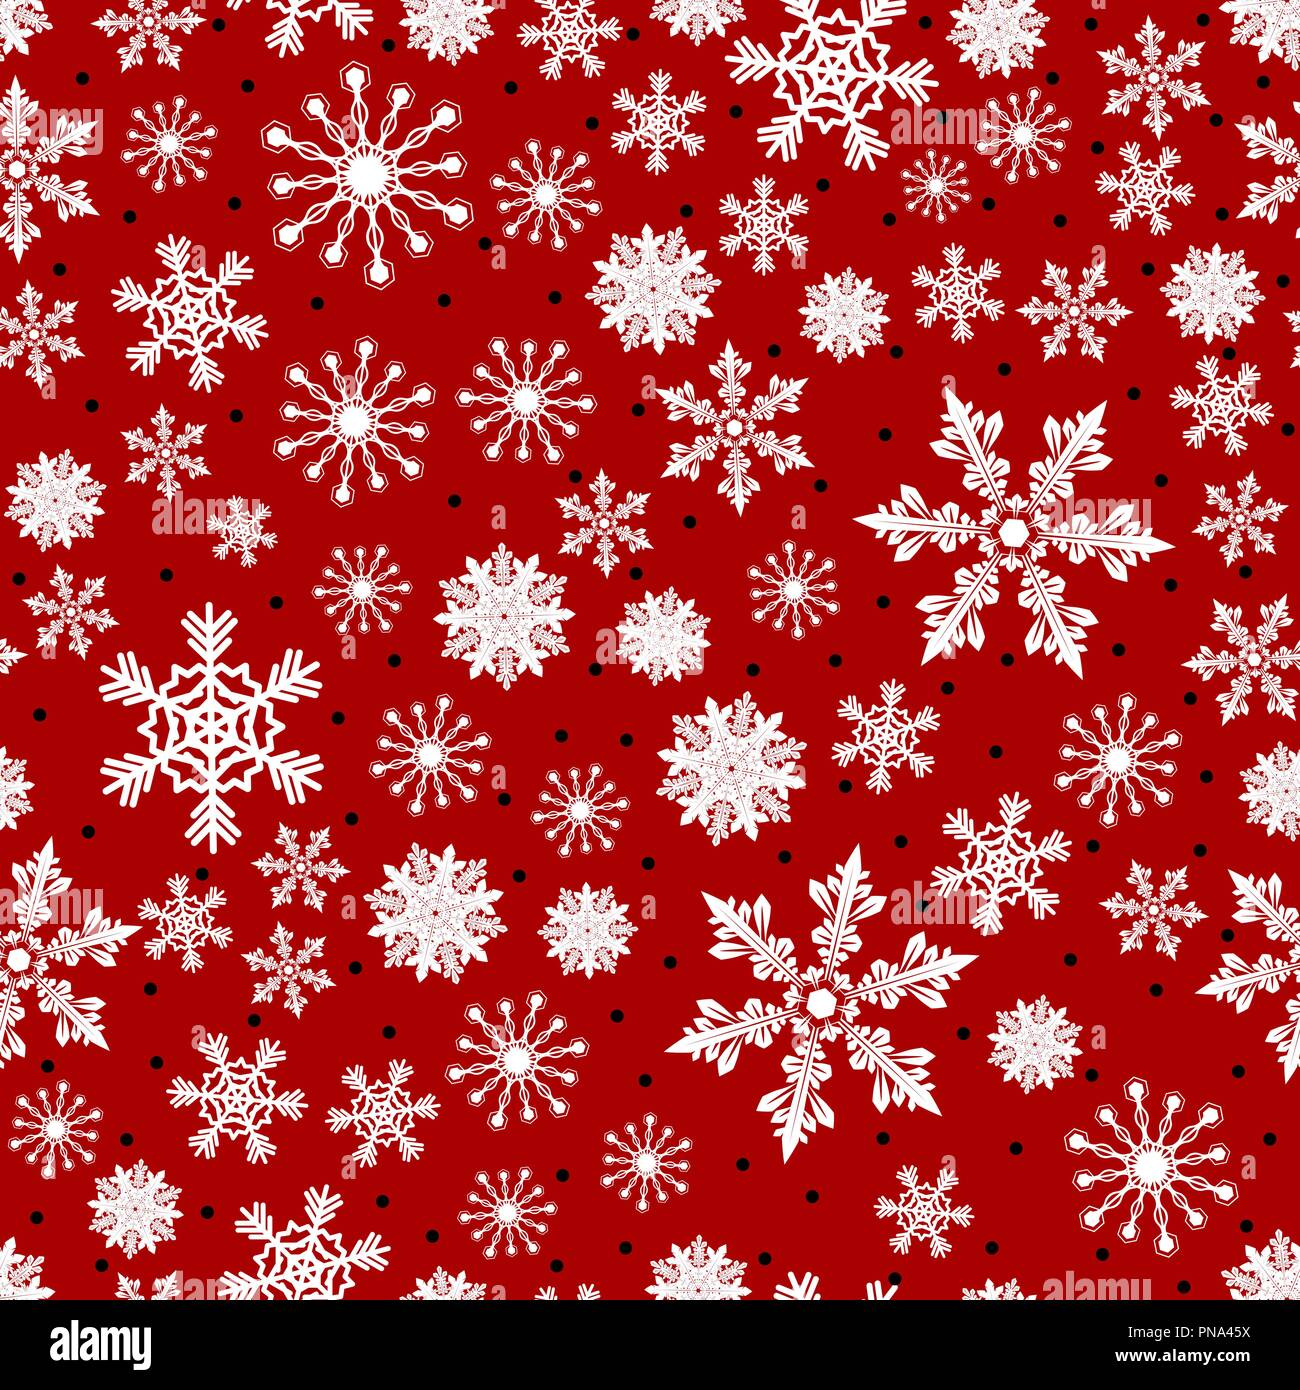 Christmas Pattern.Christmas Pattern Made Of Snowflakes And Dots Vector Winter